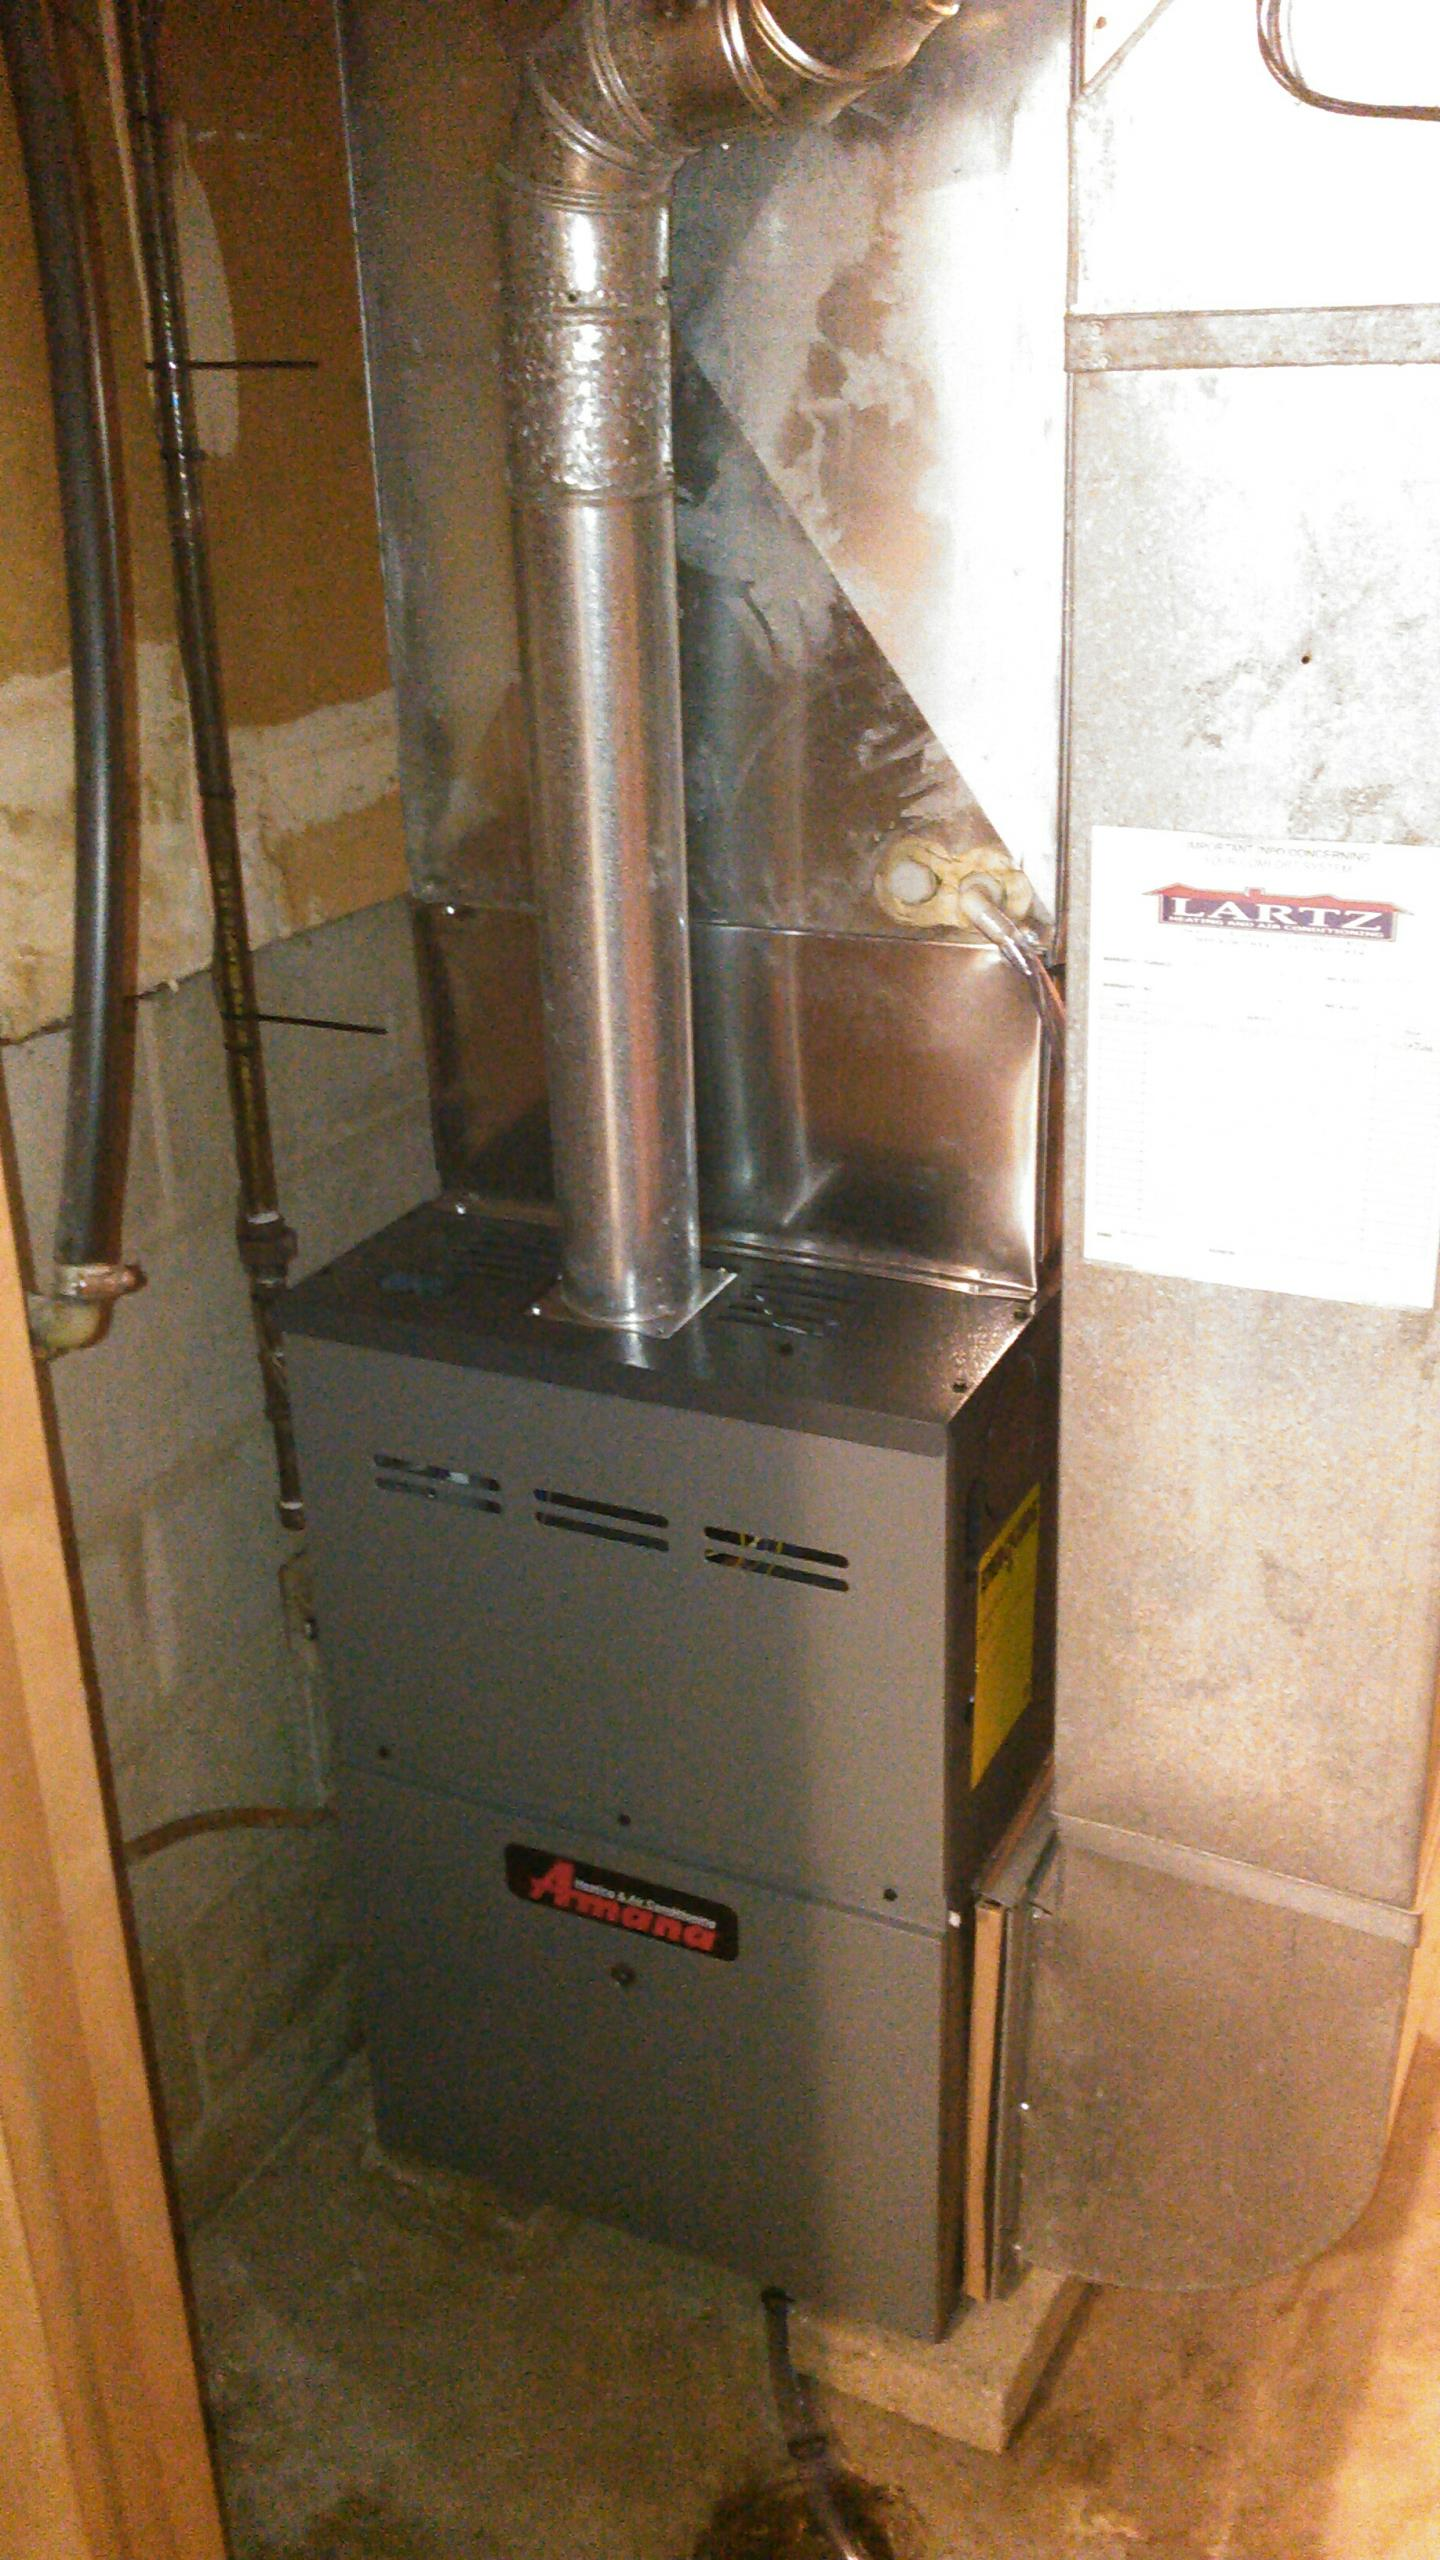 Downs, IL - AFTER FURNACE WAS INSTALLED PICTURE